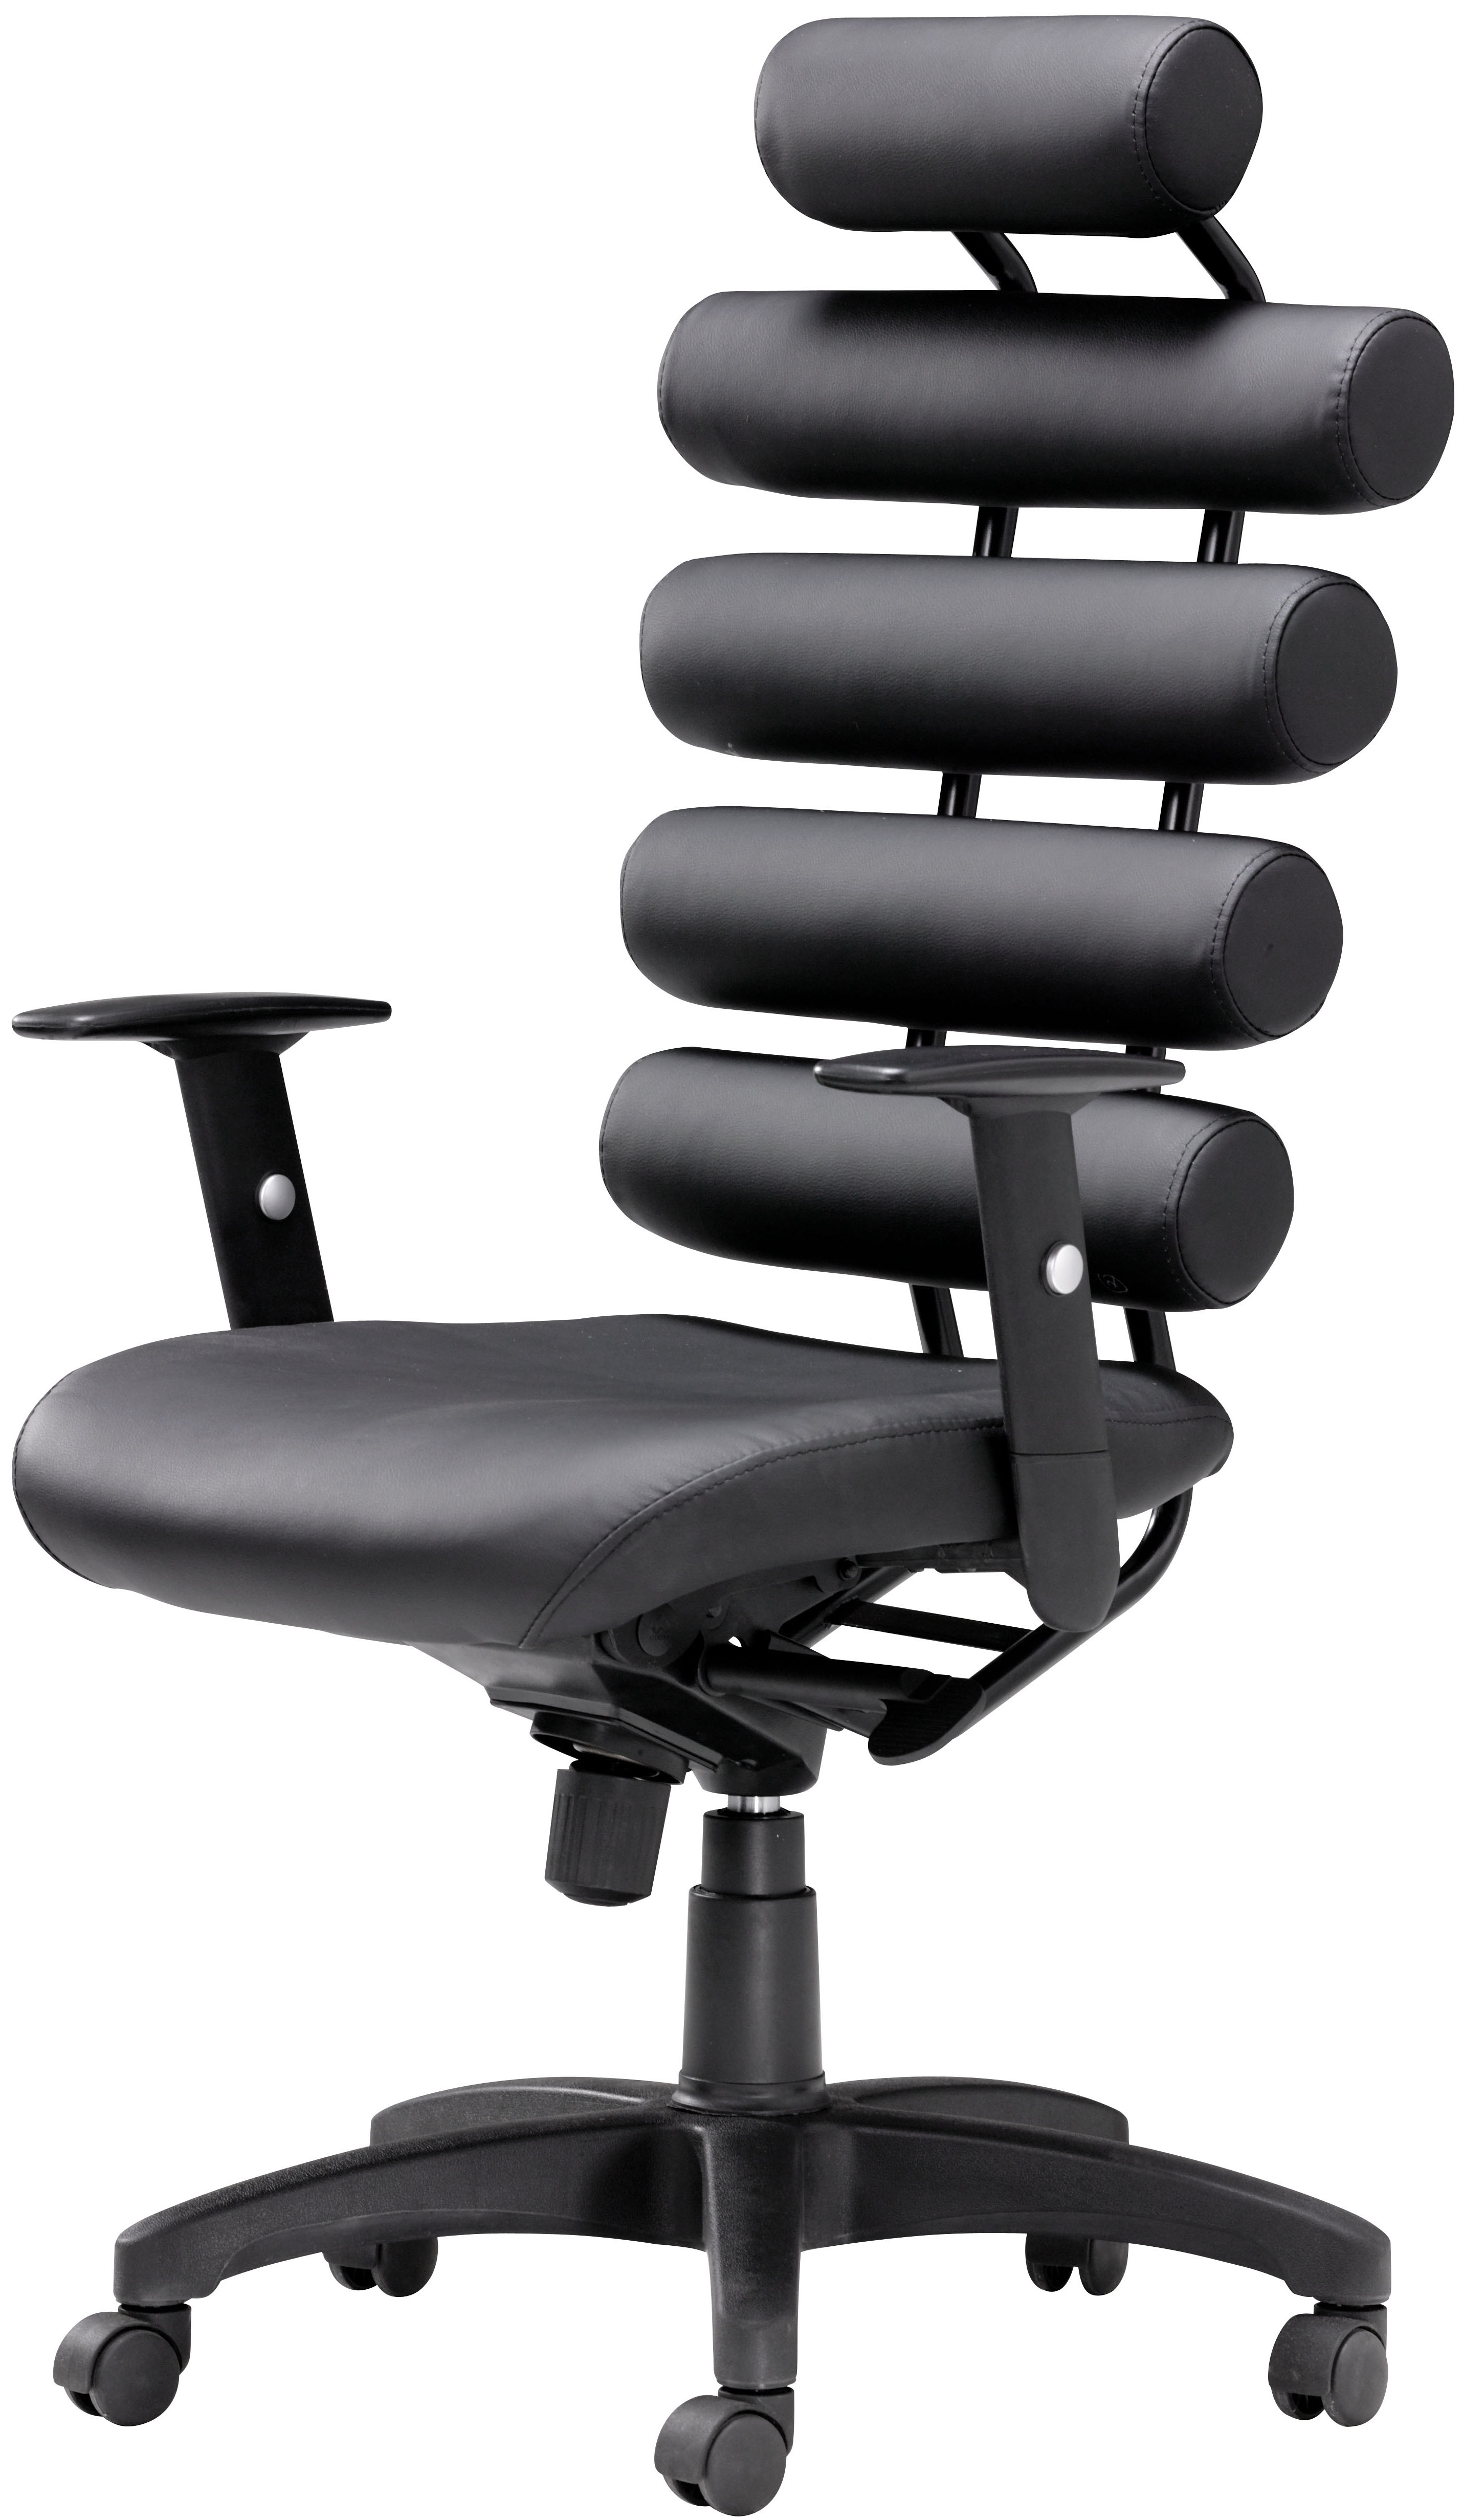 Zuo Unico Office Chair In Black